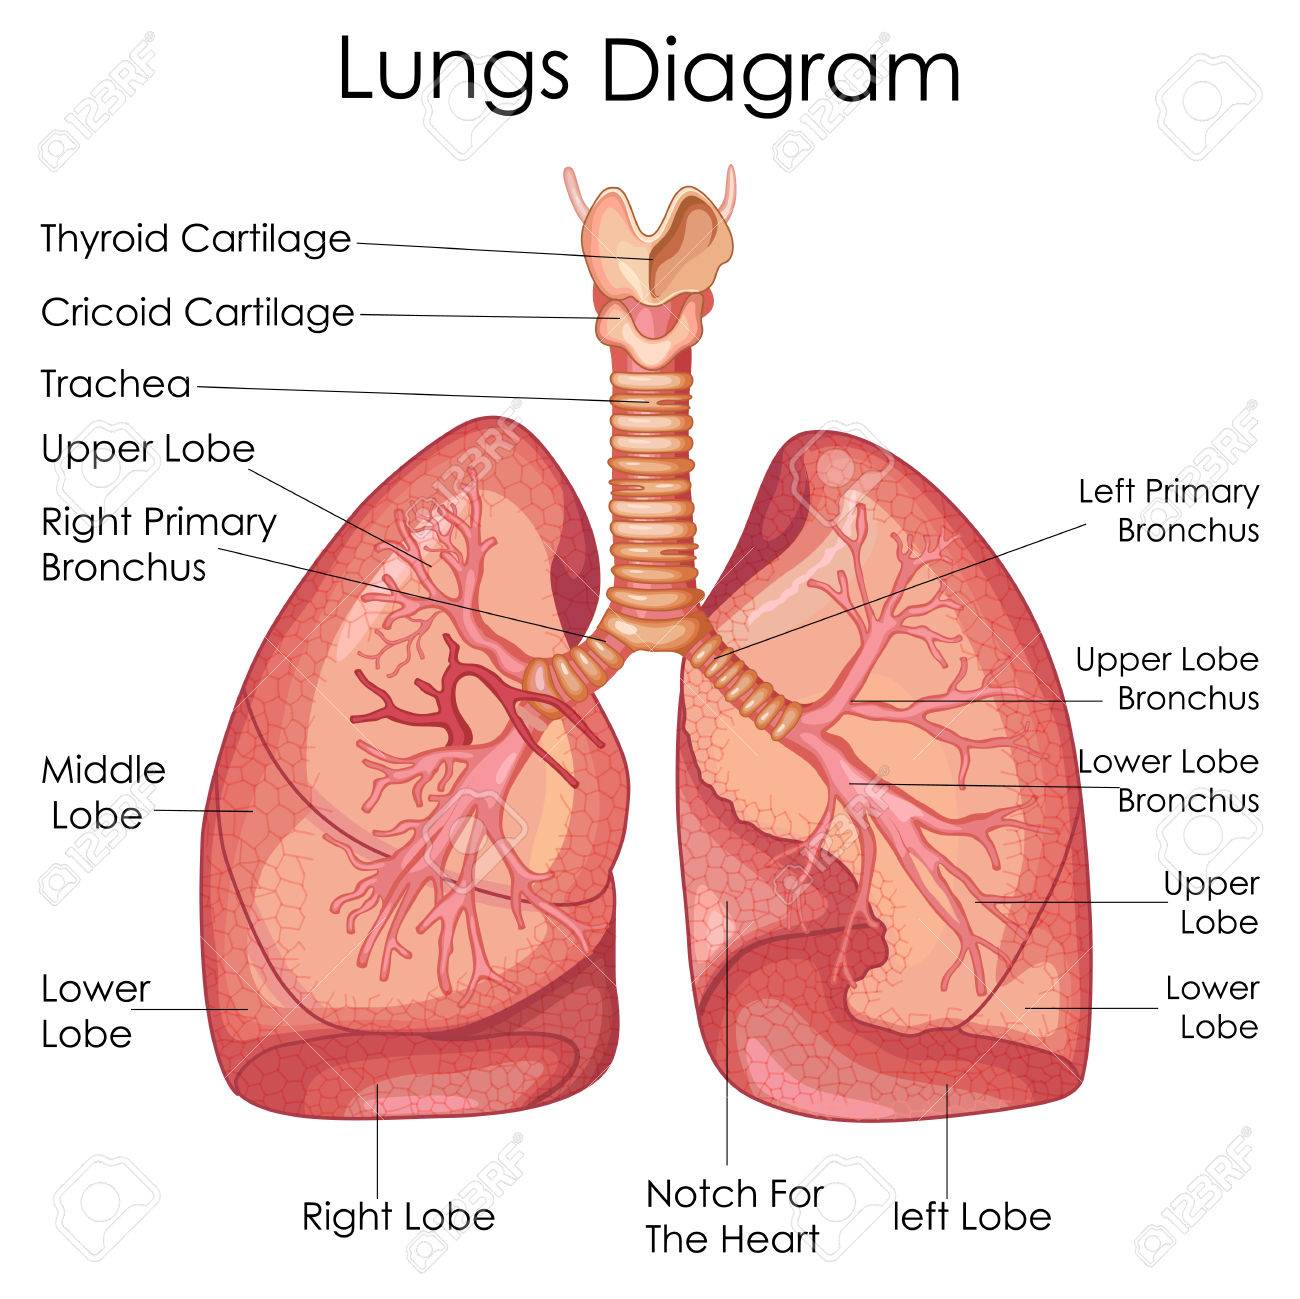 hight resolution of diagram of the lungs wiring diagram query diagram of the lungs in a human diagram of the lungs